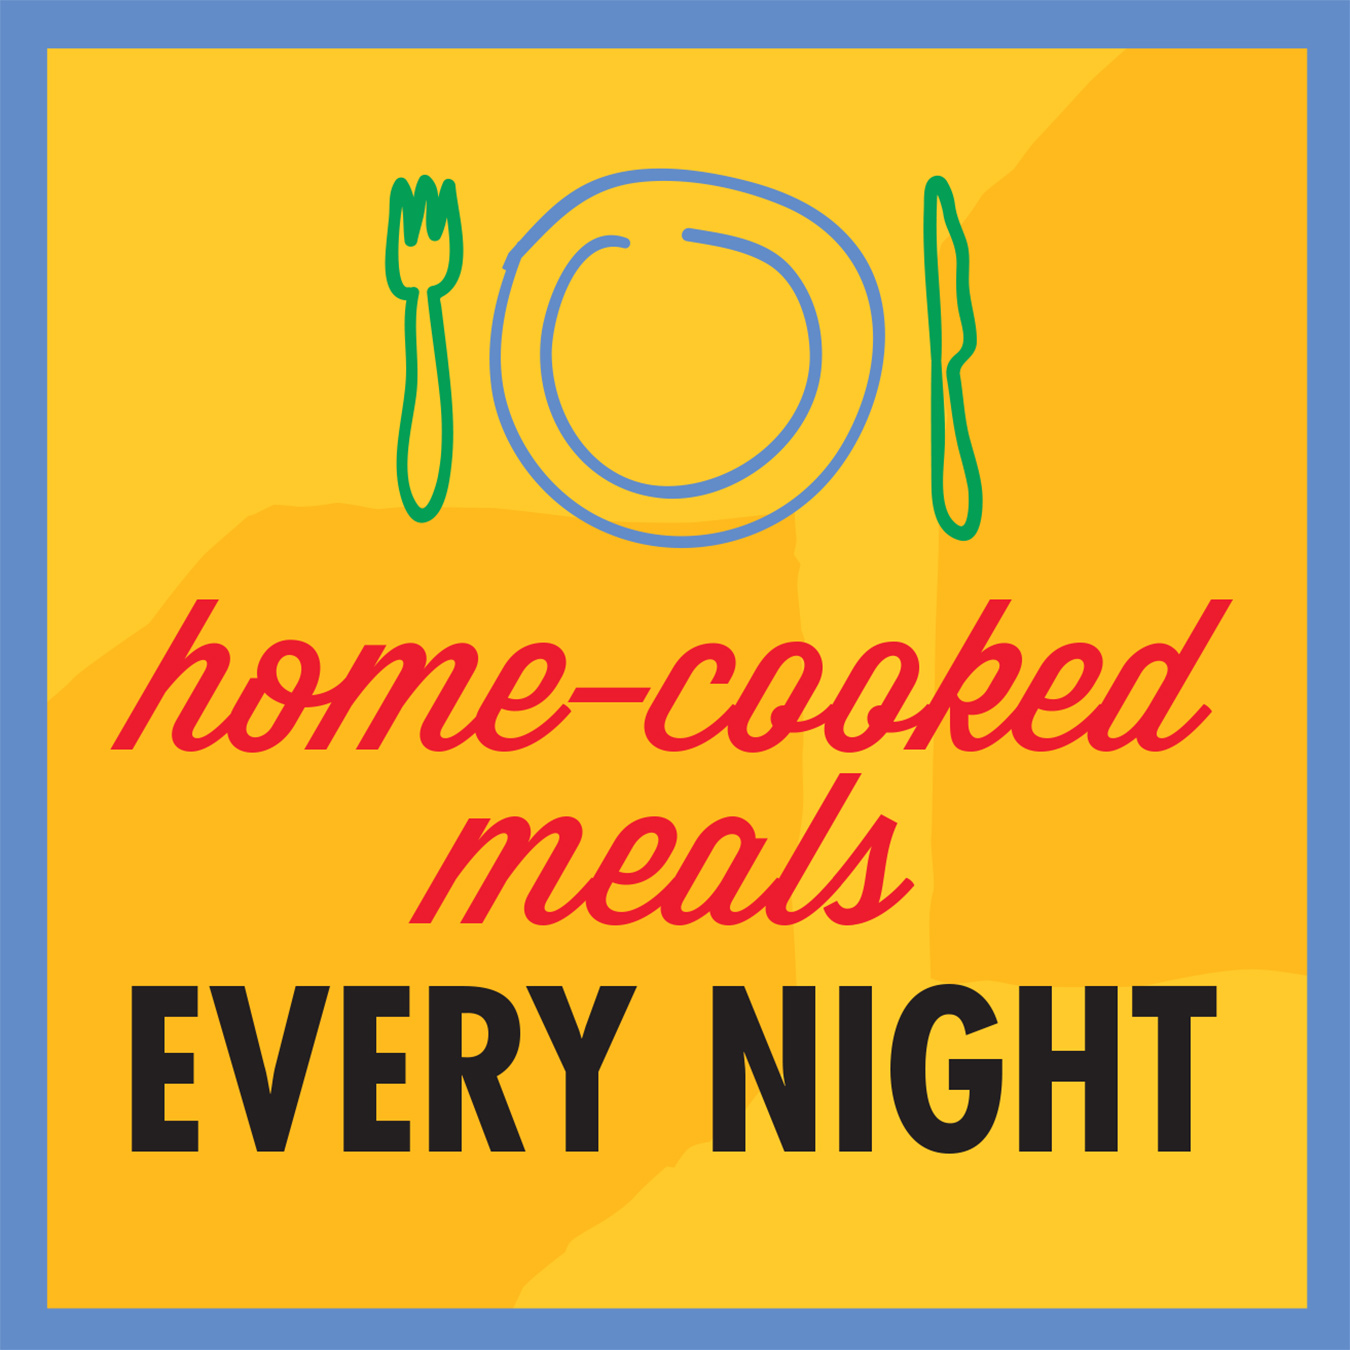 home-cooked meals every night